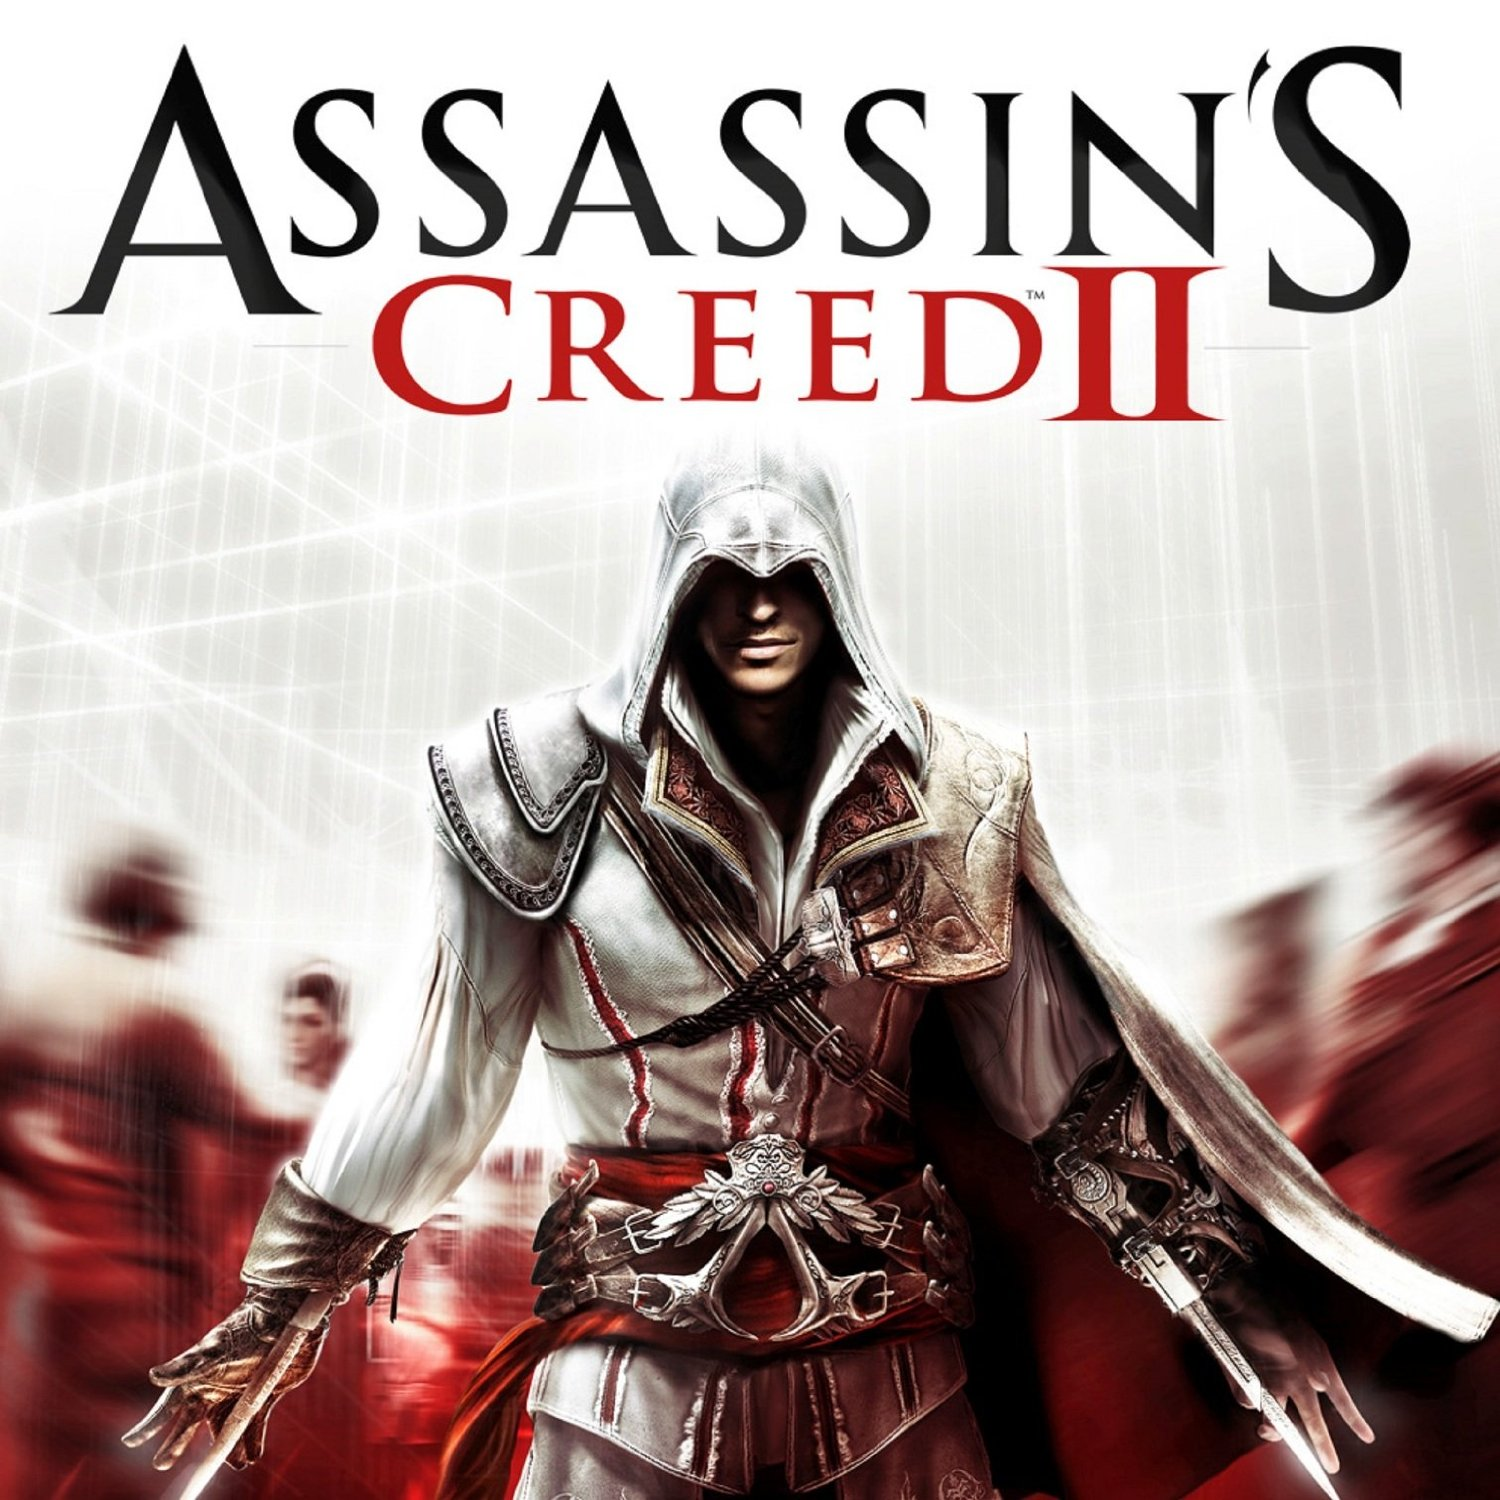 Assassin's Creed II. Soundtrack from Assassin's Creed II